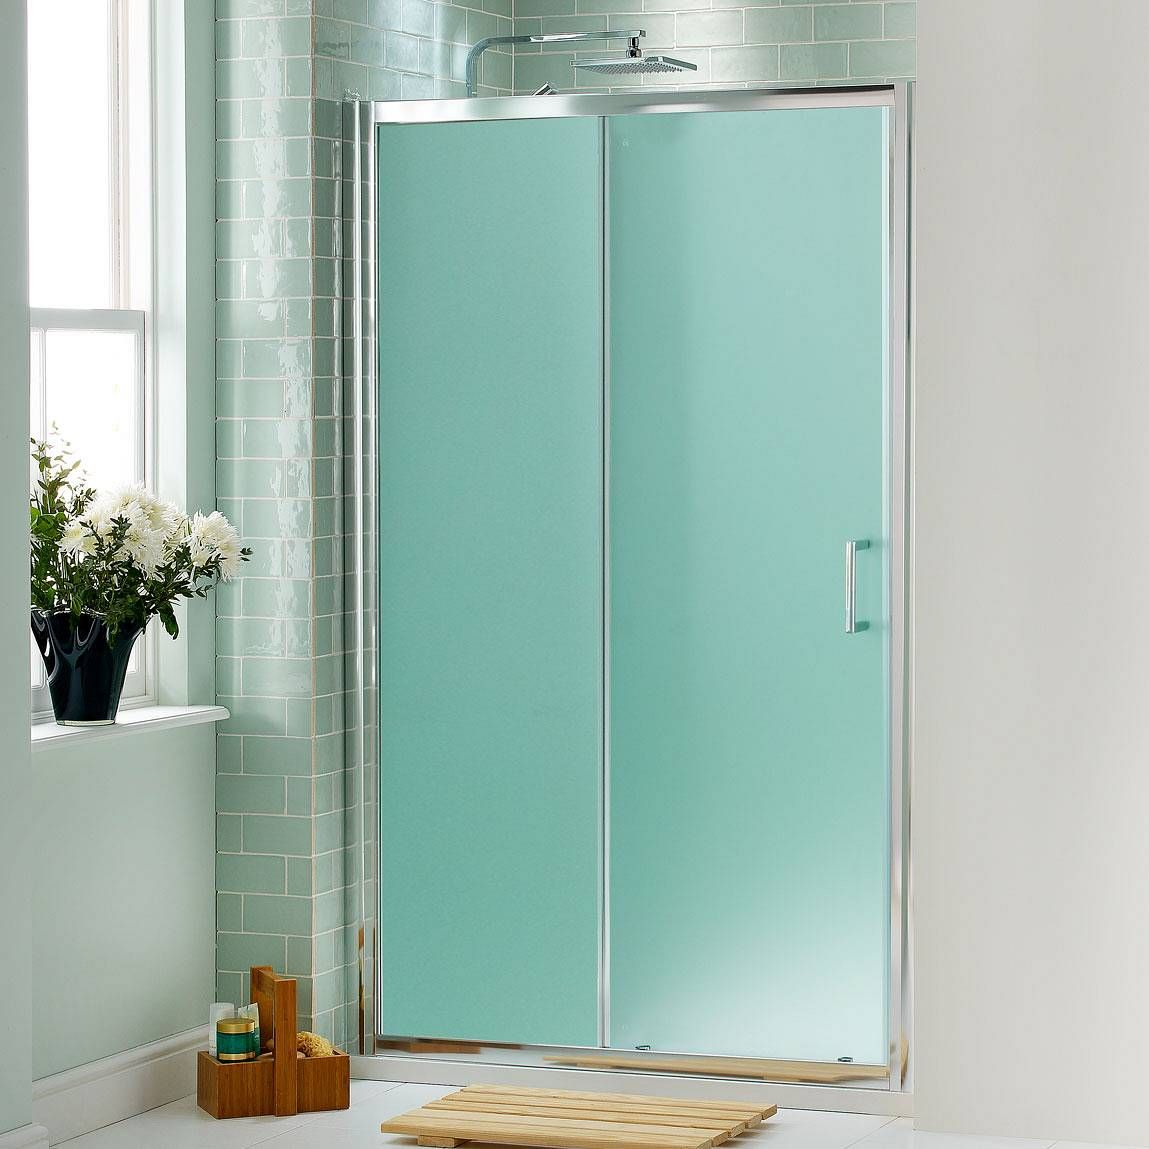 Incredible frosted glass doors inspirational home decor for Frosted glass sliding doors